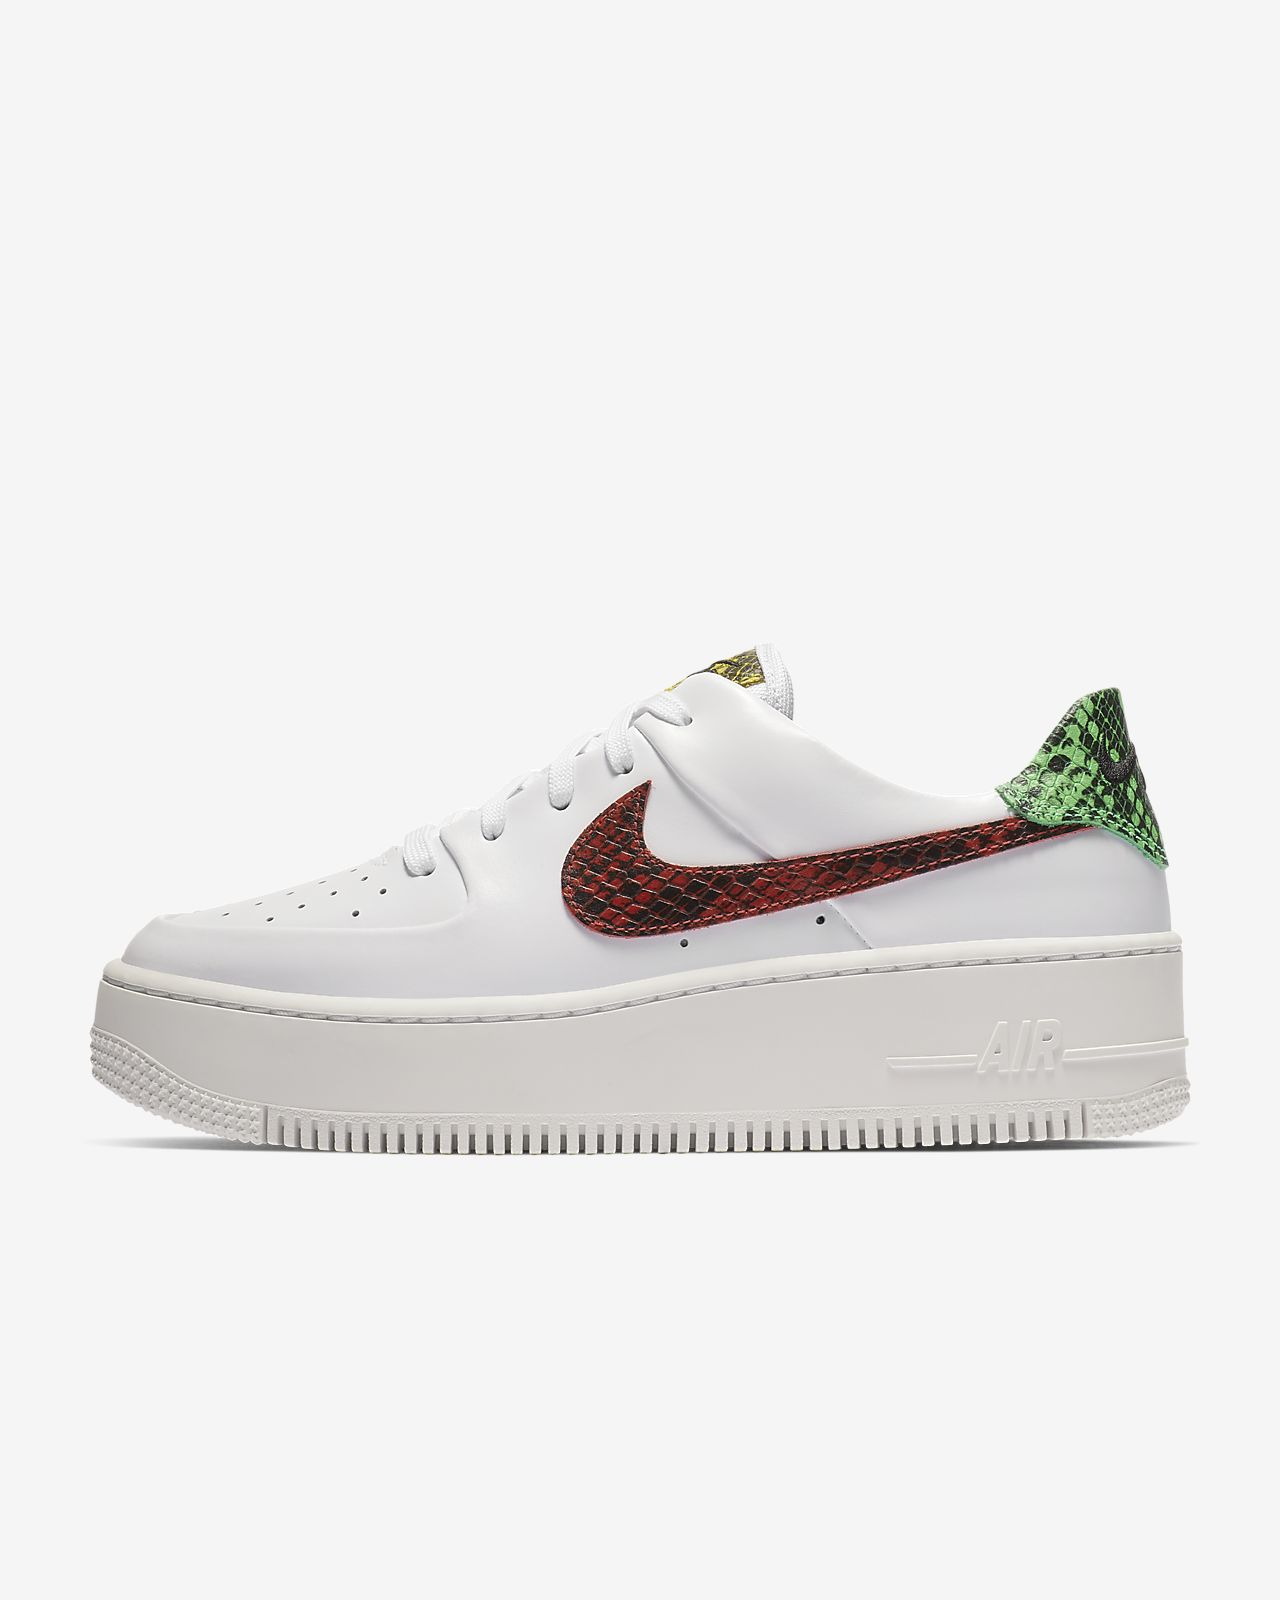 buy online fe8bf 84110 ... Chaussure Nike Air Force 1 Sage Low Premium Animal pour Femme